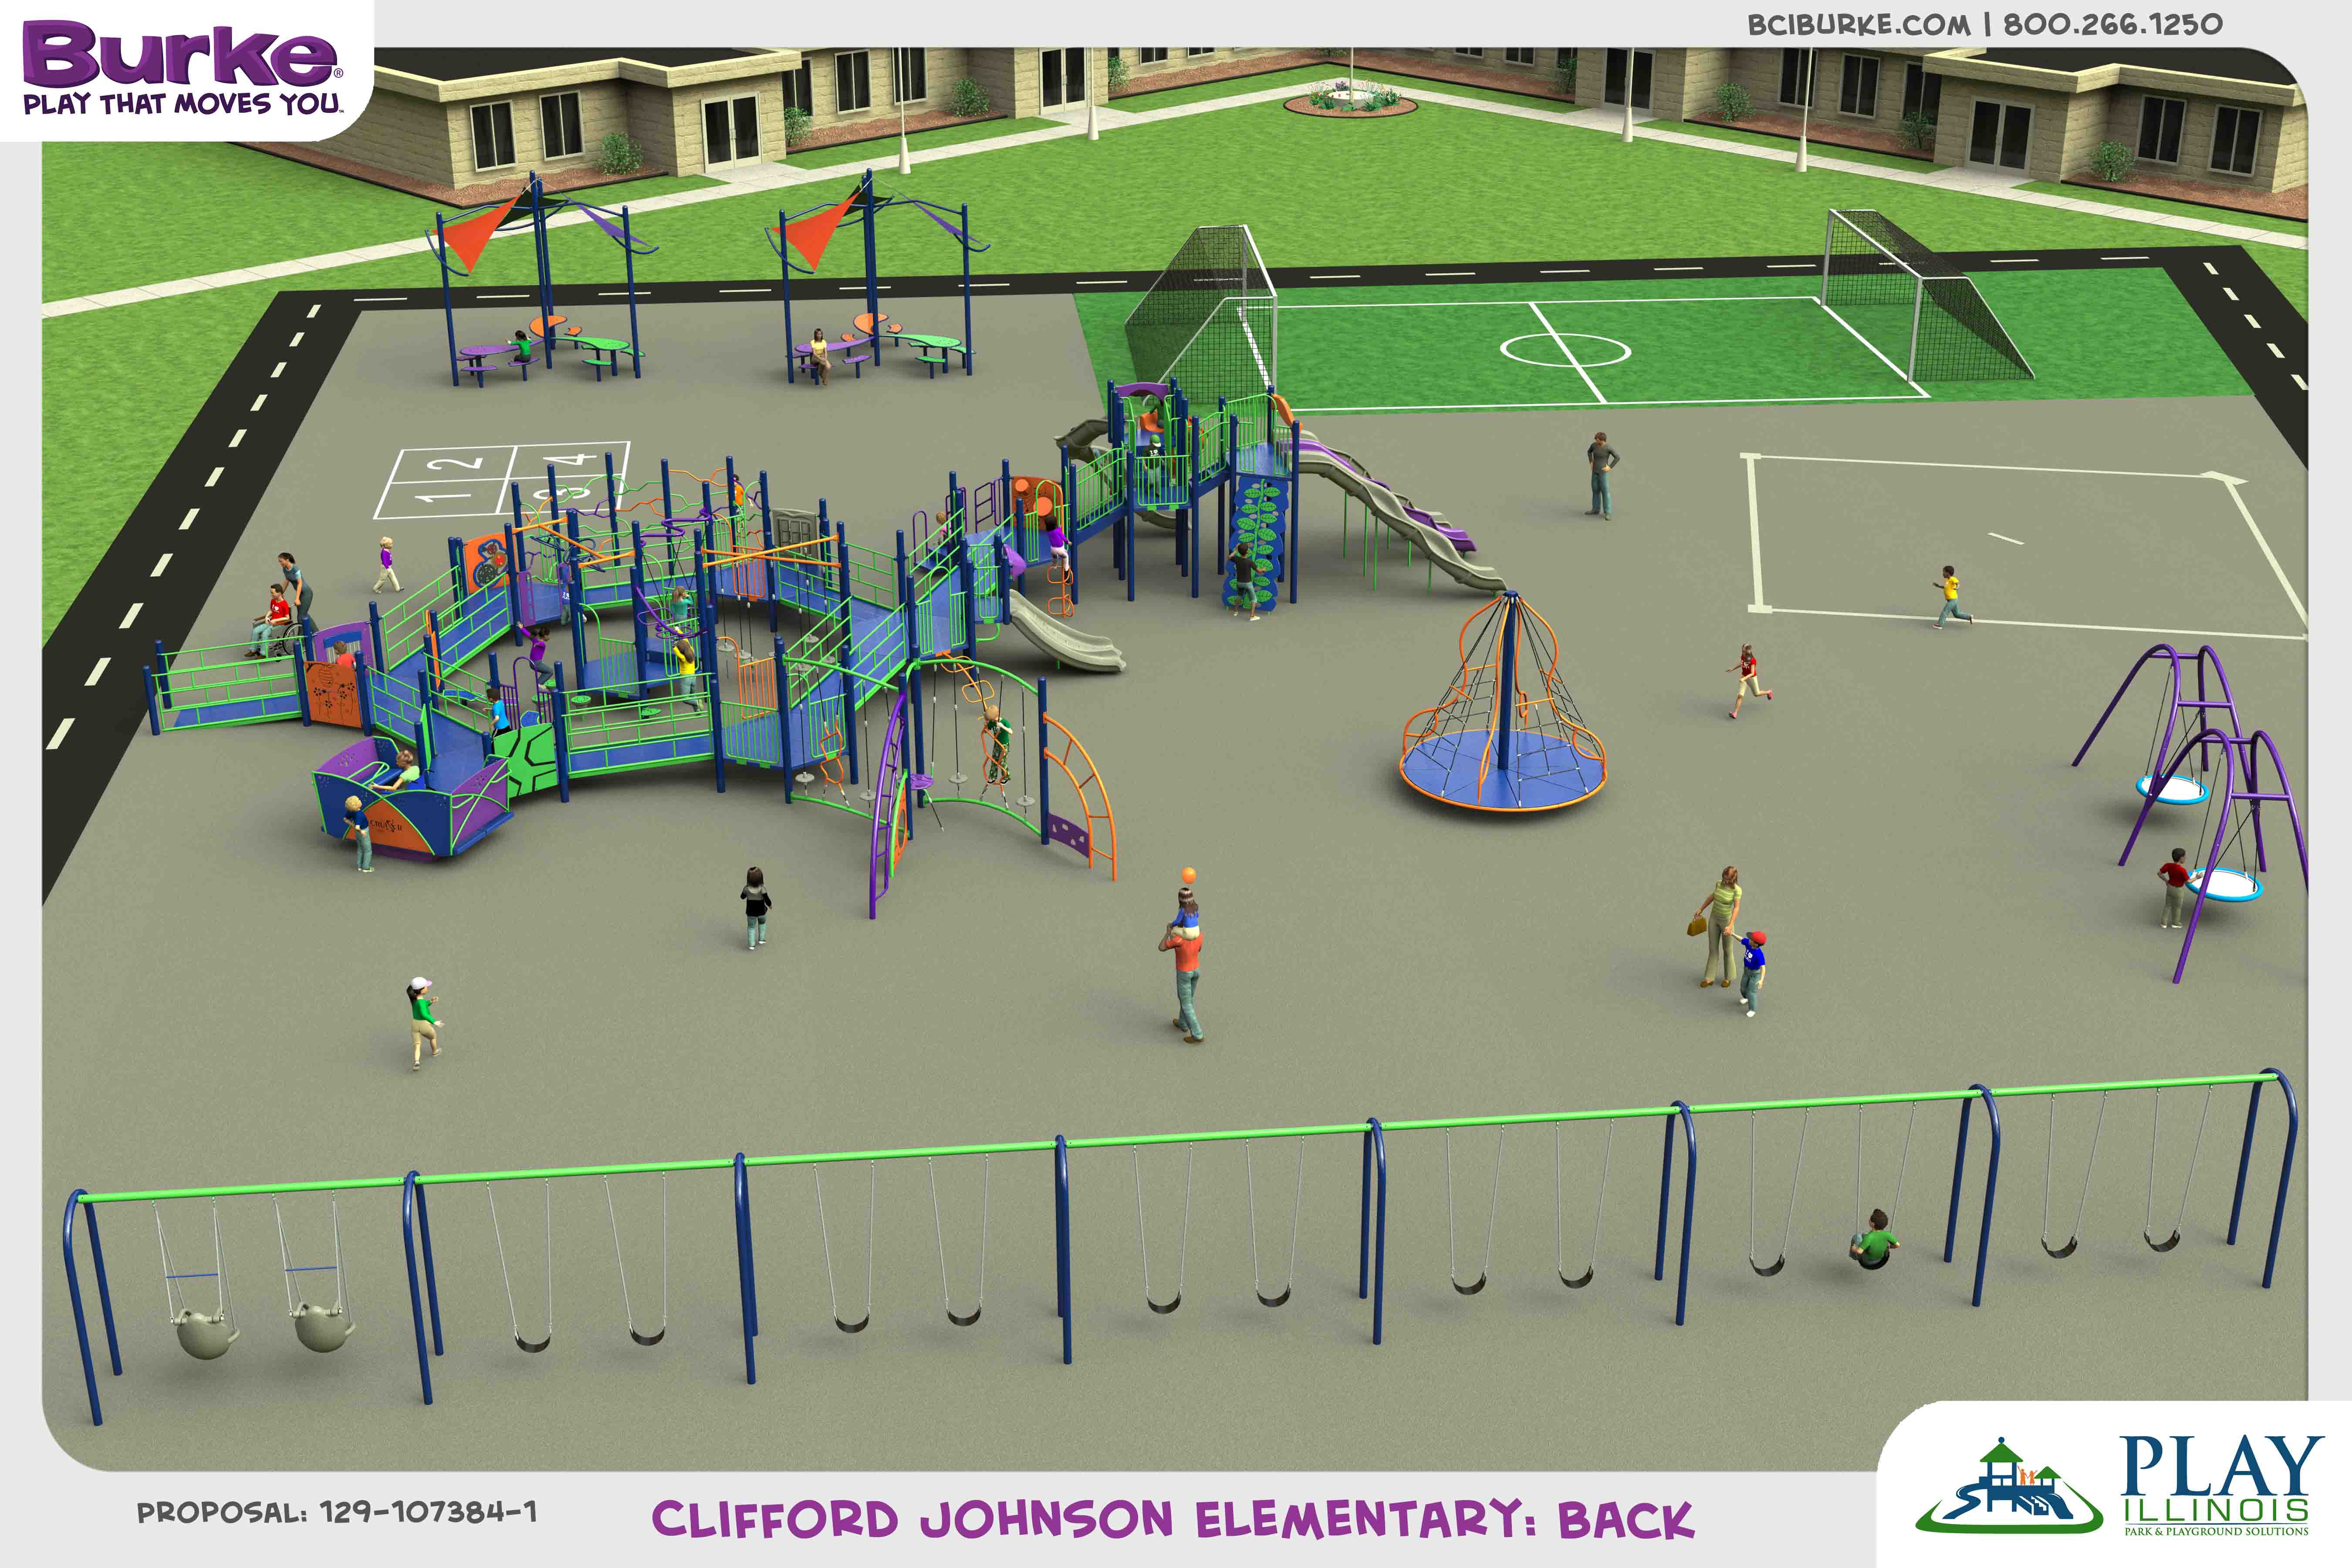 129-107384-1A-copy_MC_CliffordJohnson dream build play experience accessible playgrounds